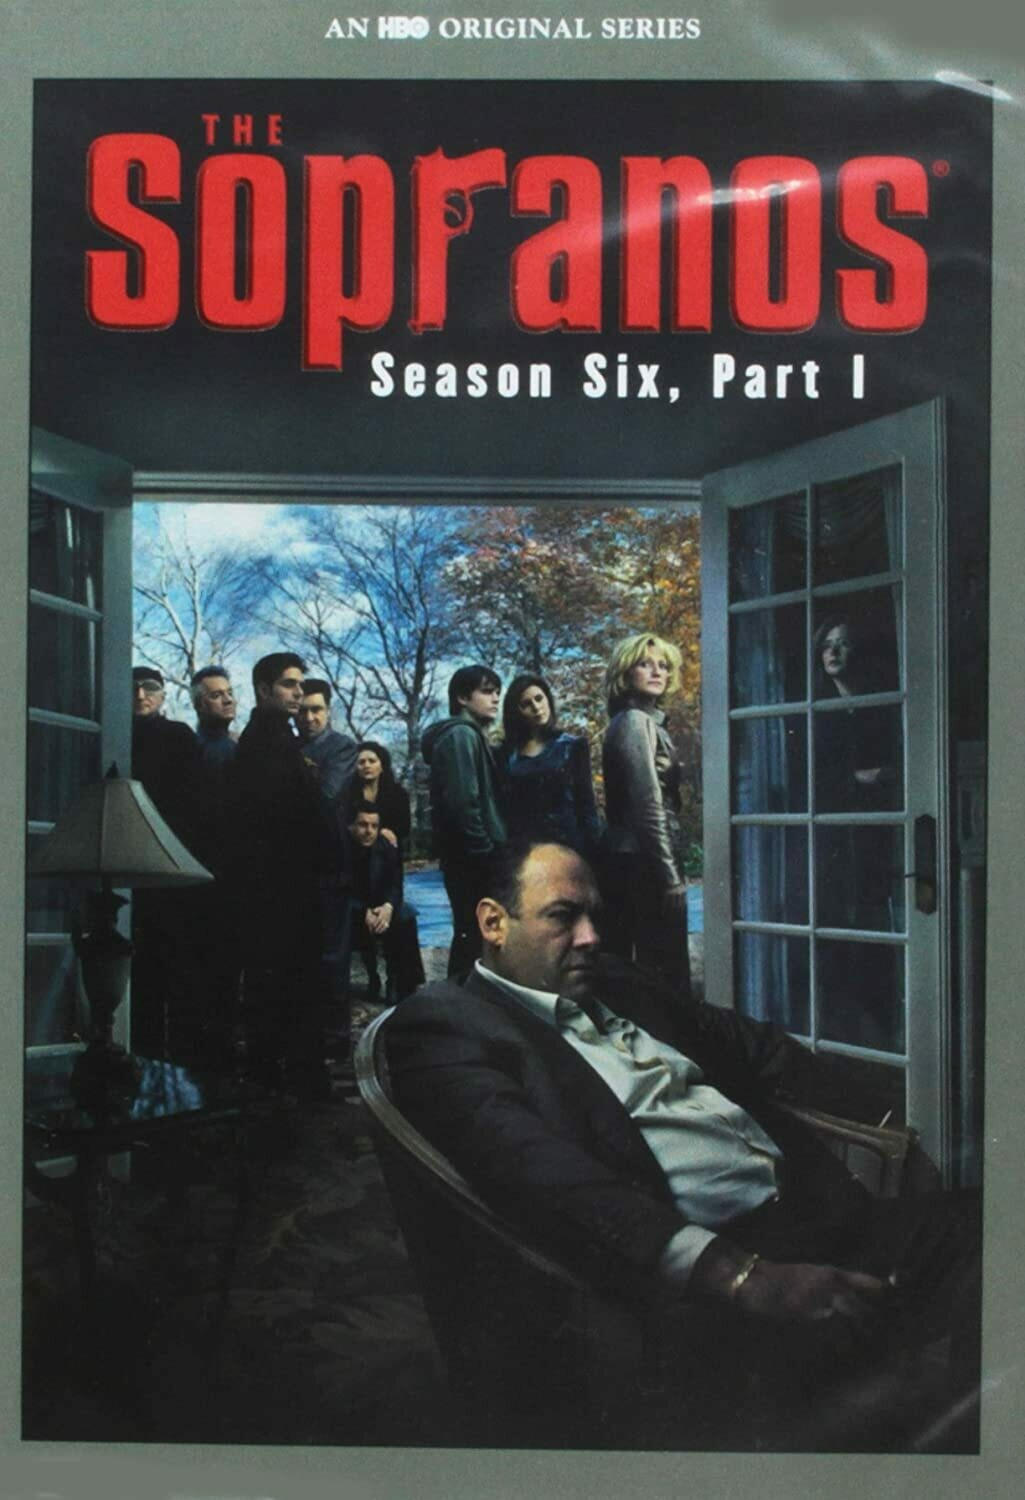 Sopranos Season Six Part One (7 day rental)